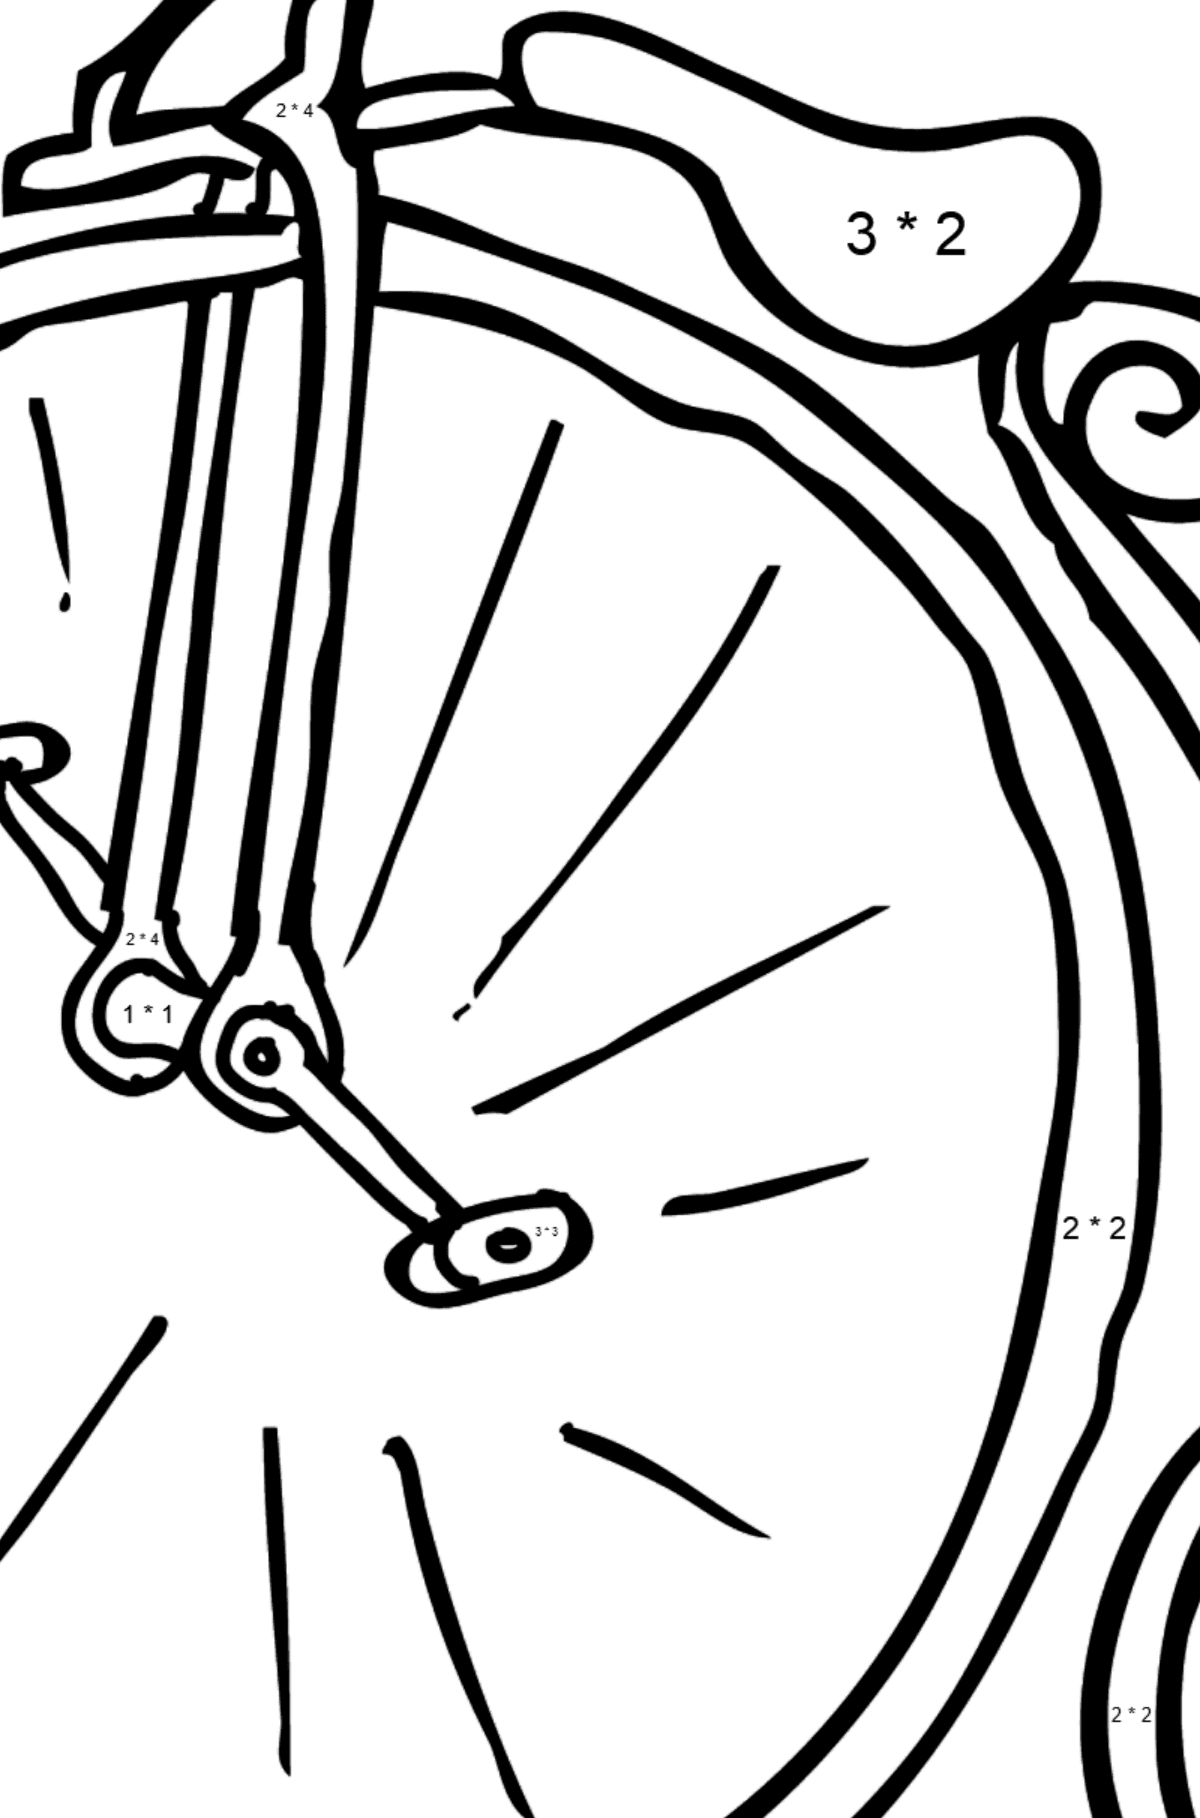 Coloring Page - A High-Wheel Cycle – Unicycle - Math Coloring - Multiplication for Kids